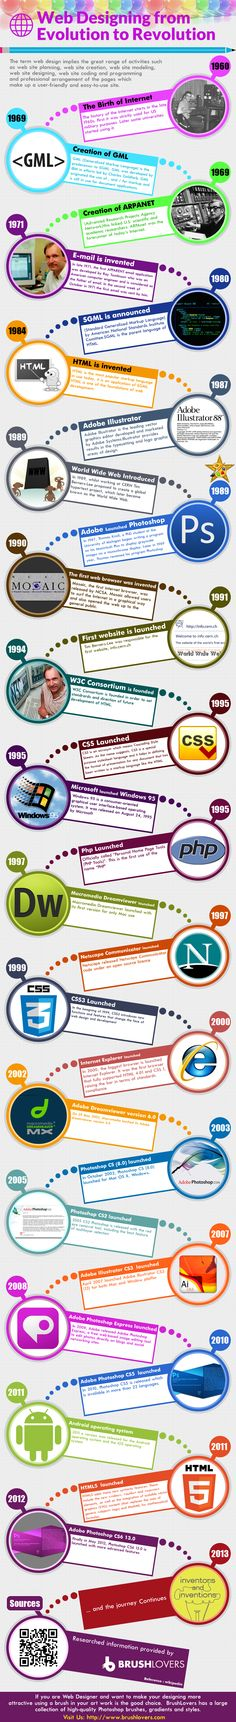 Web designing from evolution to revolution http://www.wiantech.com/